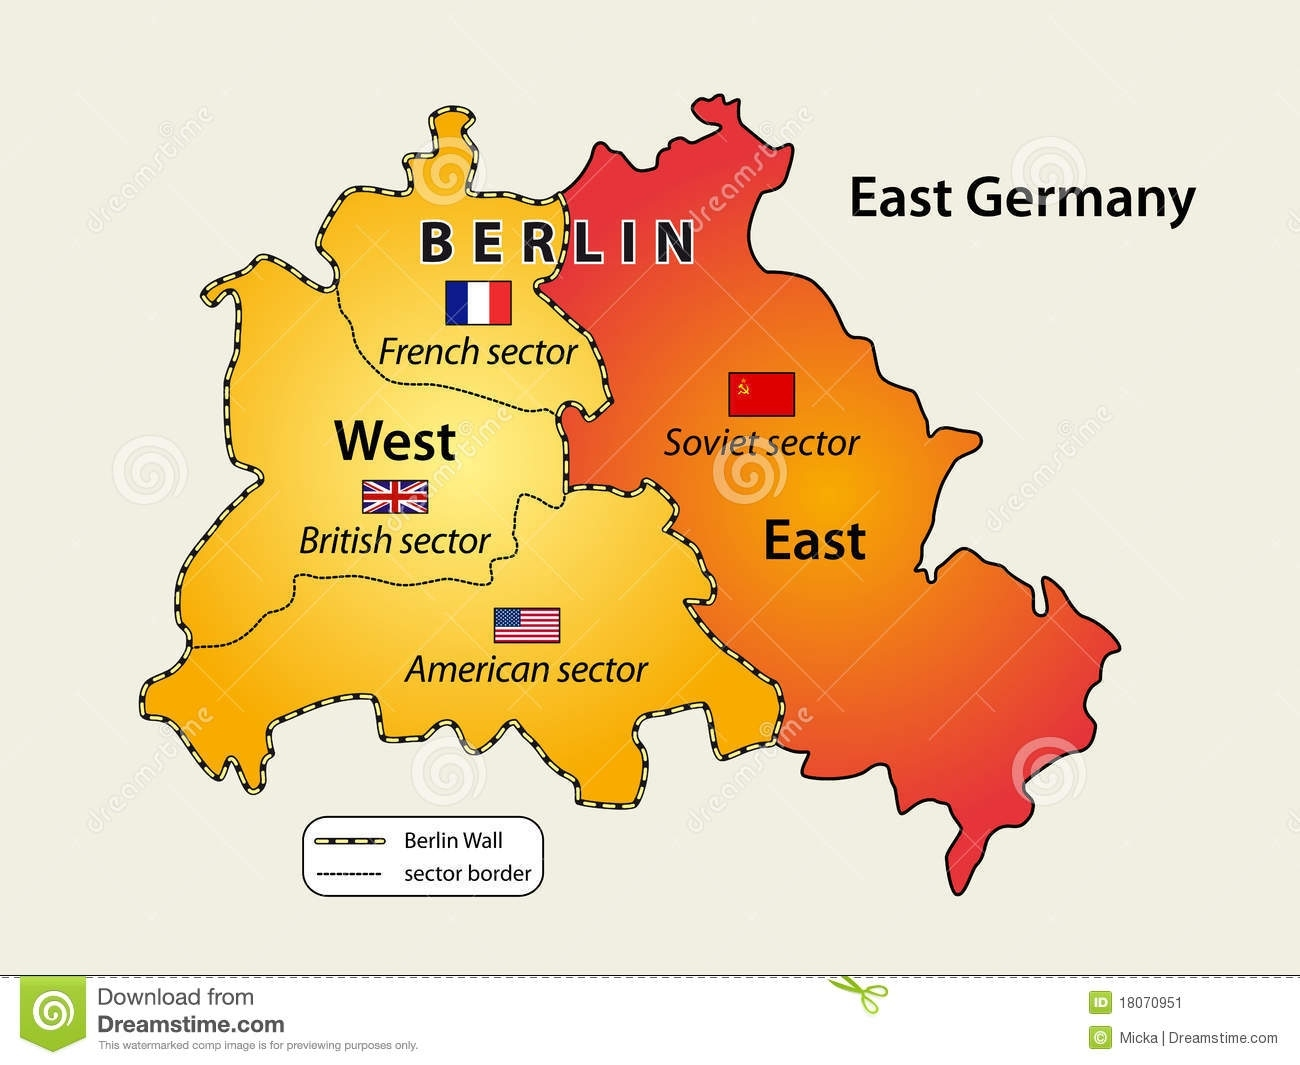 Divided Berlin Stock Vector. Illustration Of East, German - 18070951 throughout Map Of East Germany During Cold War